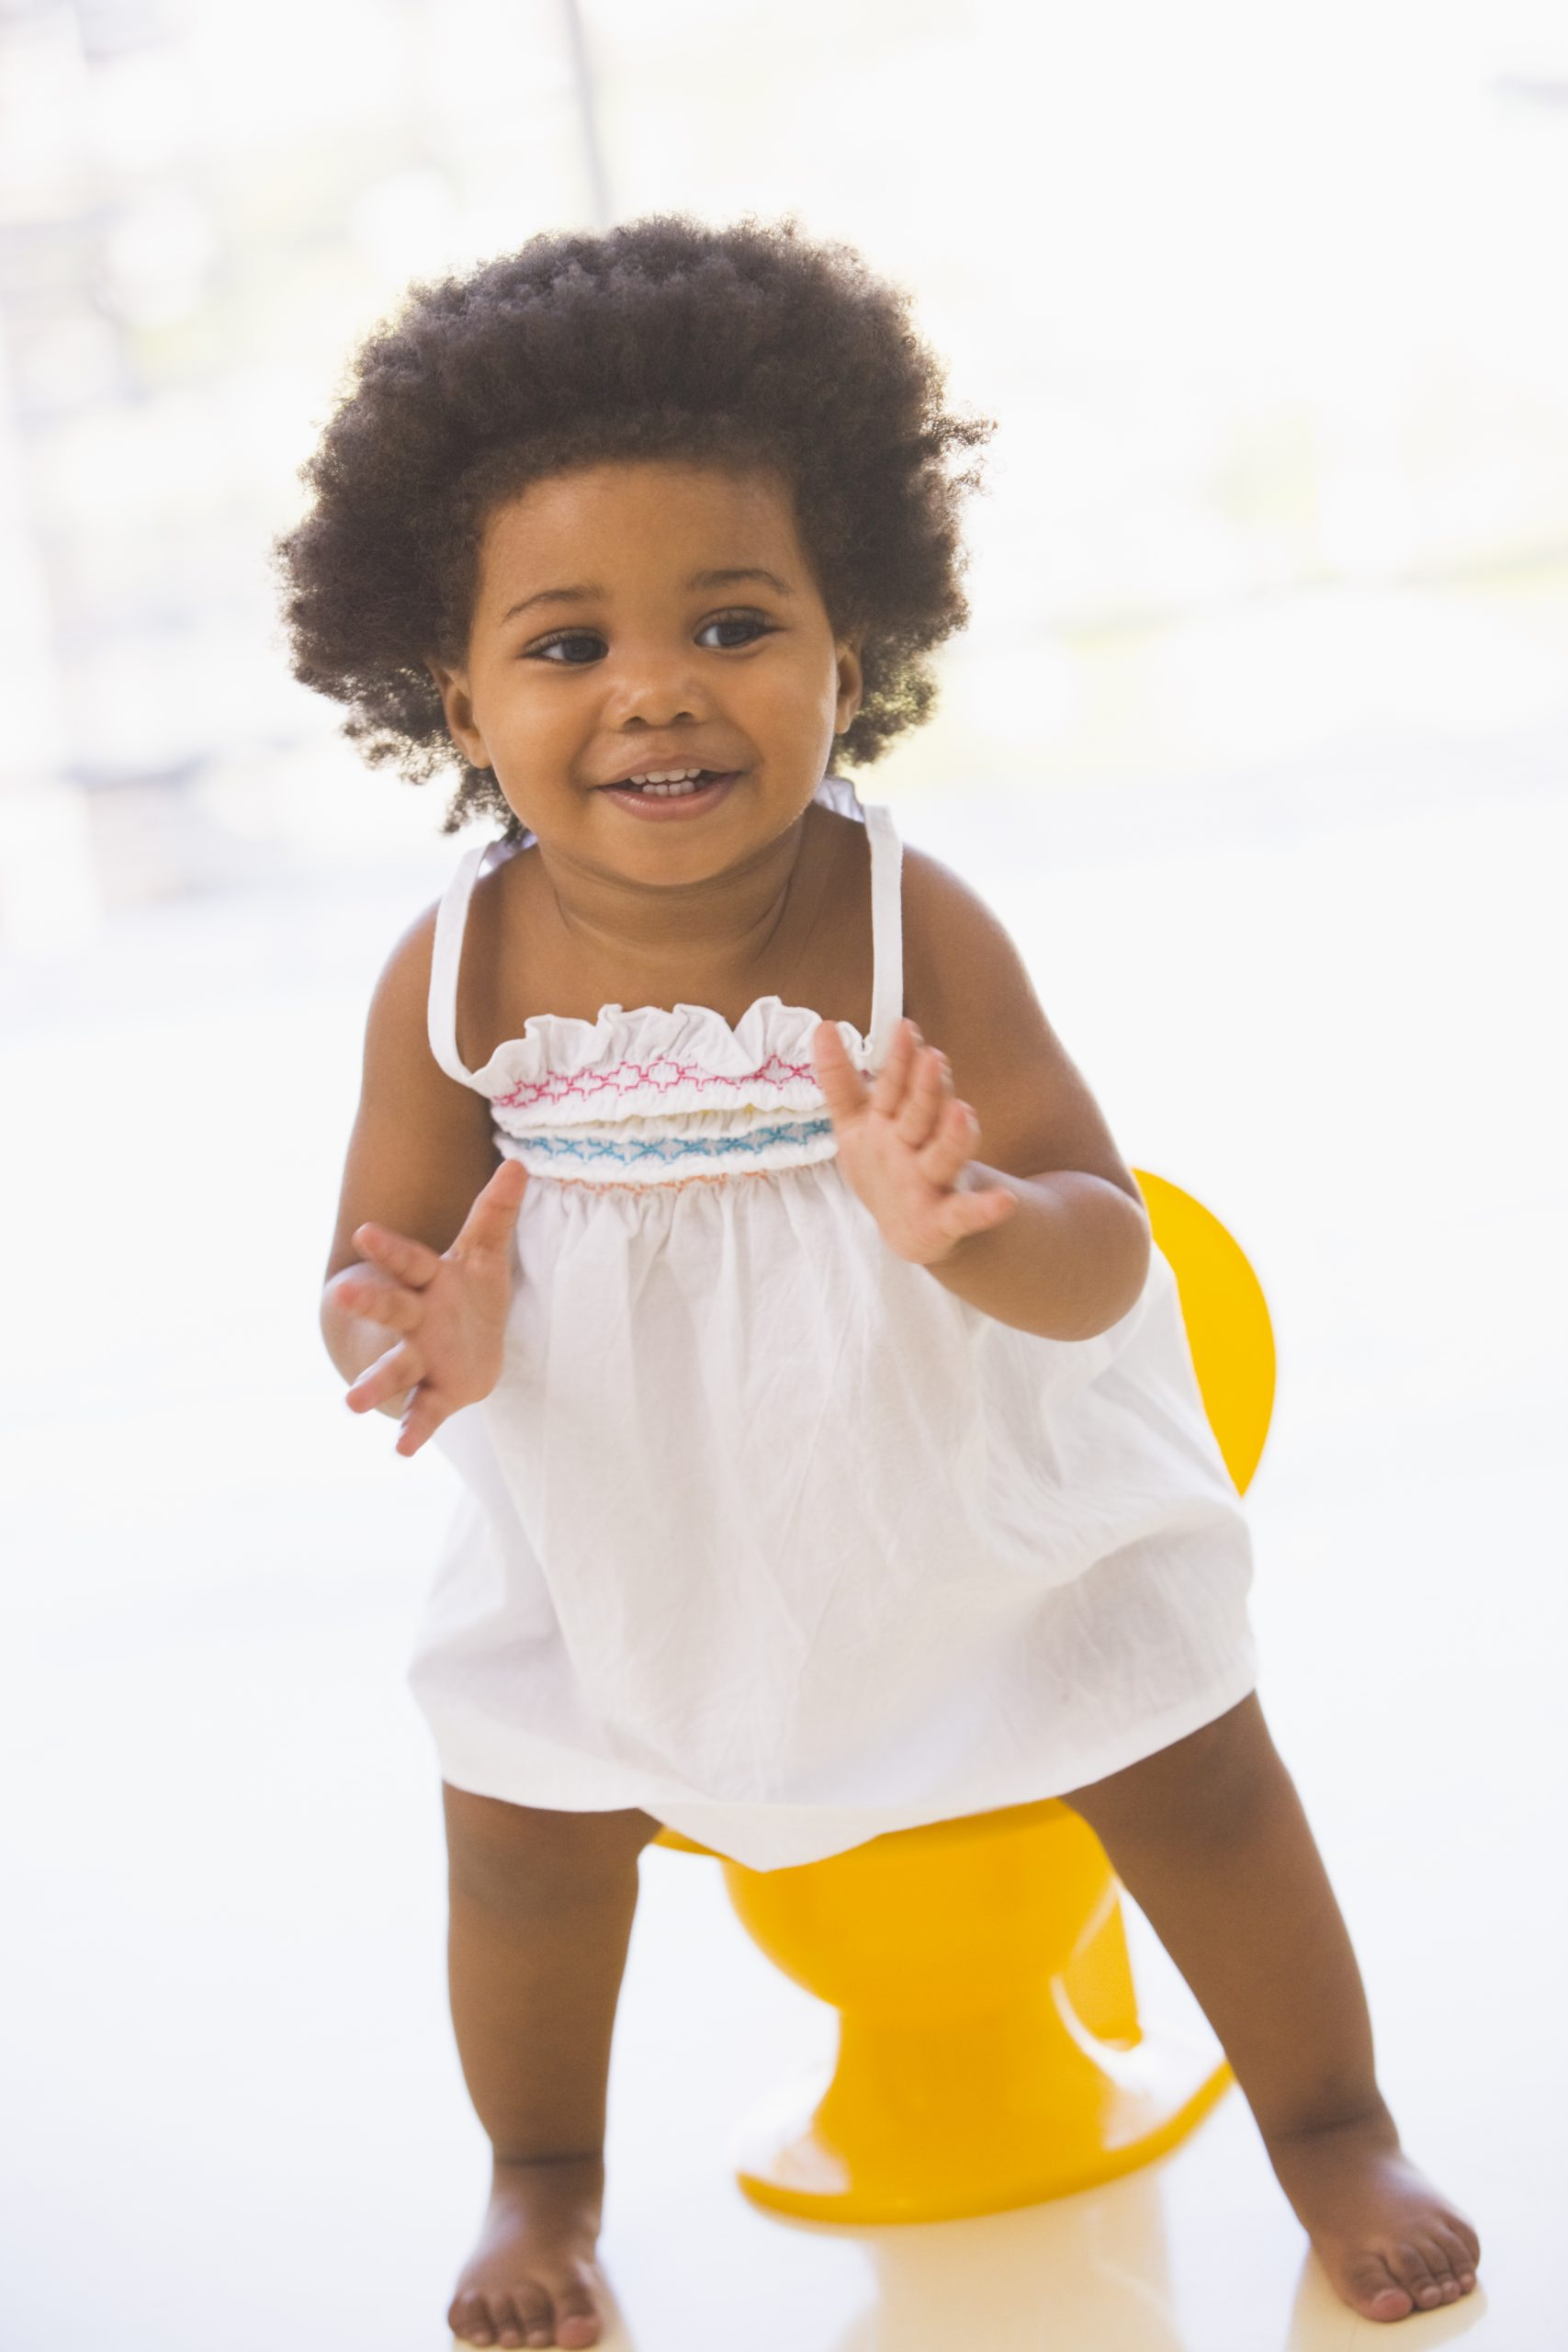 African-American girl smiling in front of a yellow potty training chair